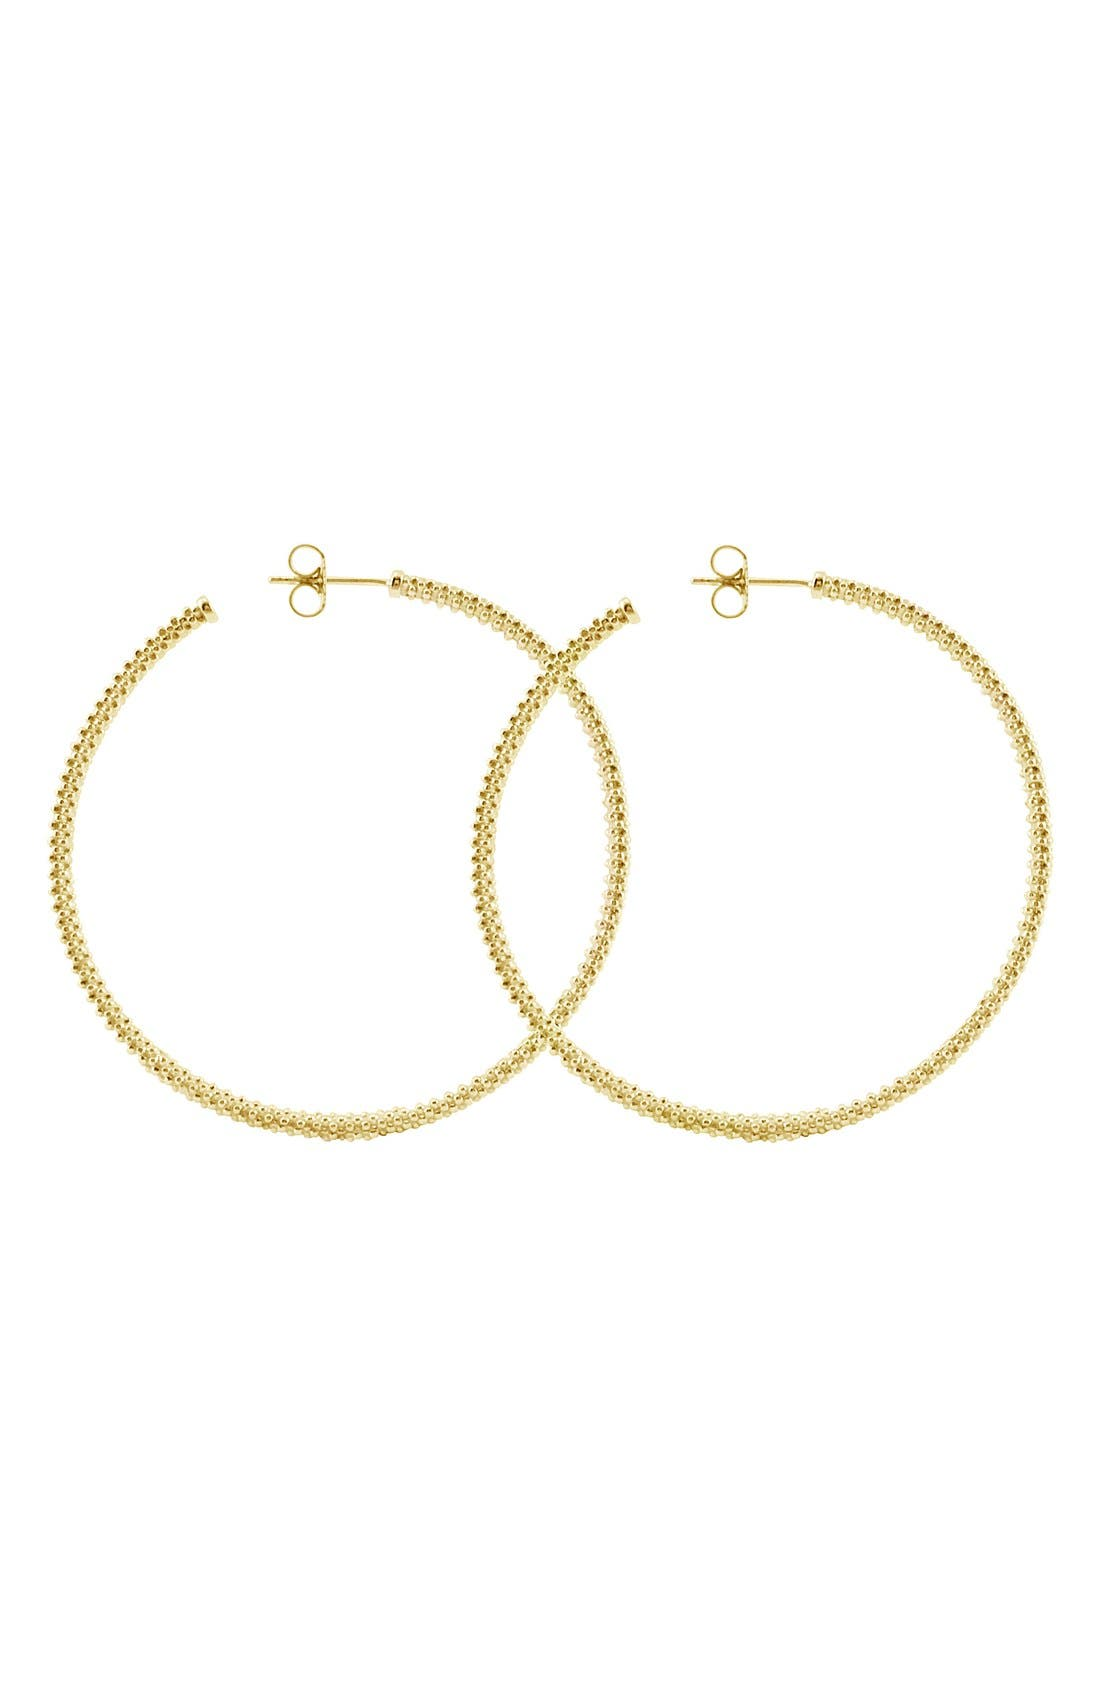 LAGOS 18K Large Hoop Earrings